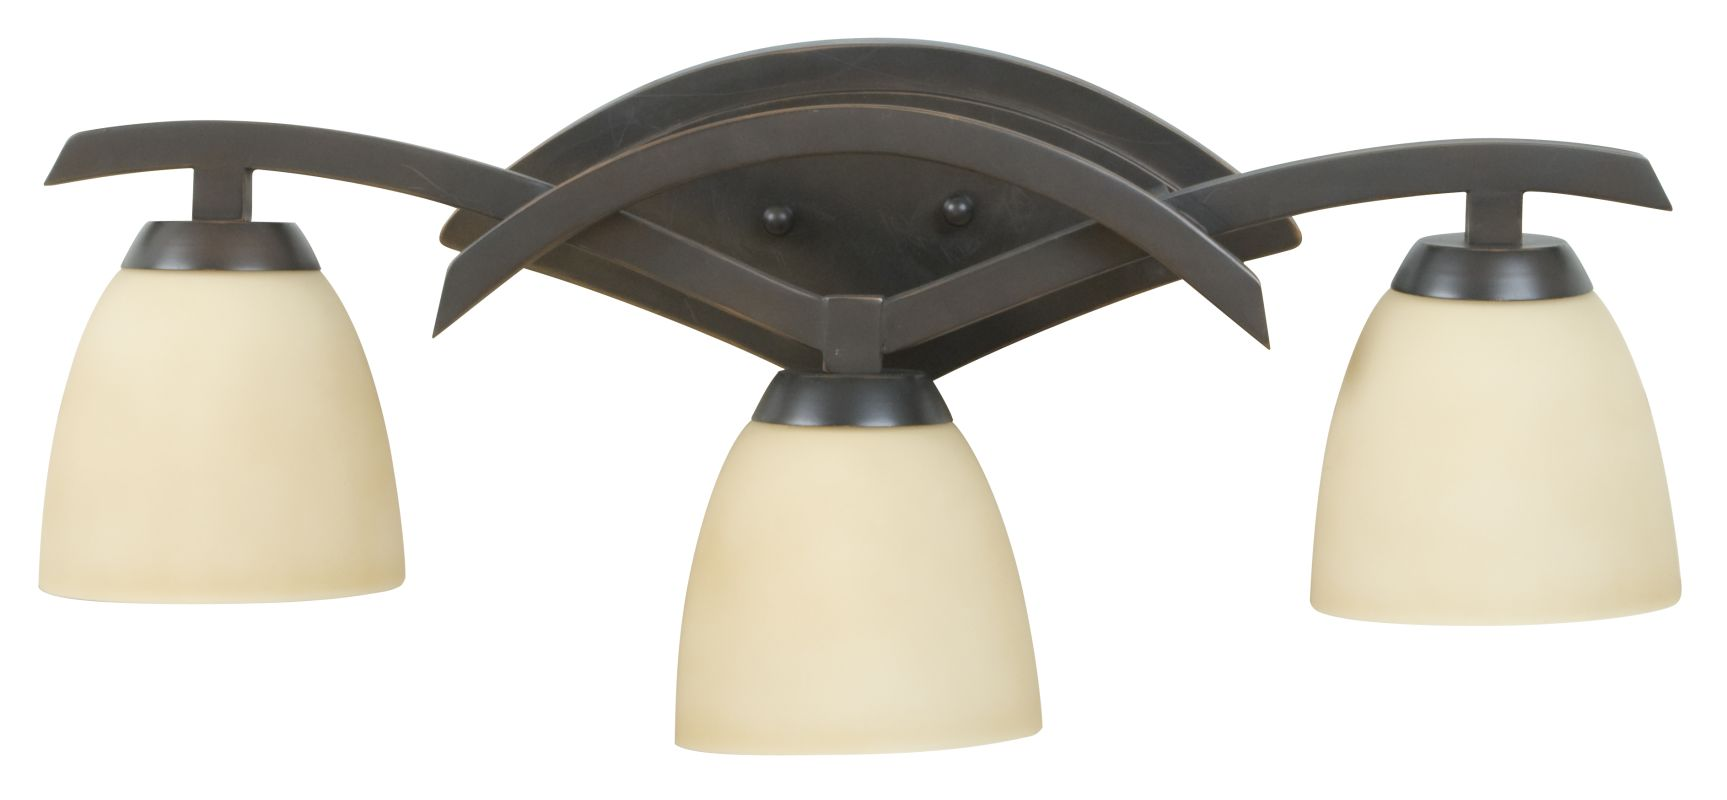 Craftmade 14024 Viewpoint 3 Light Bathroom Vanity Light - 24 Inches Sale $189.00 ITEM#: 1726228 MODEL# :14024OBG3 UPC#: 647881105167 :